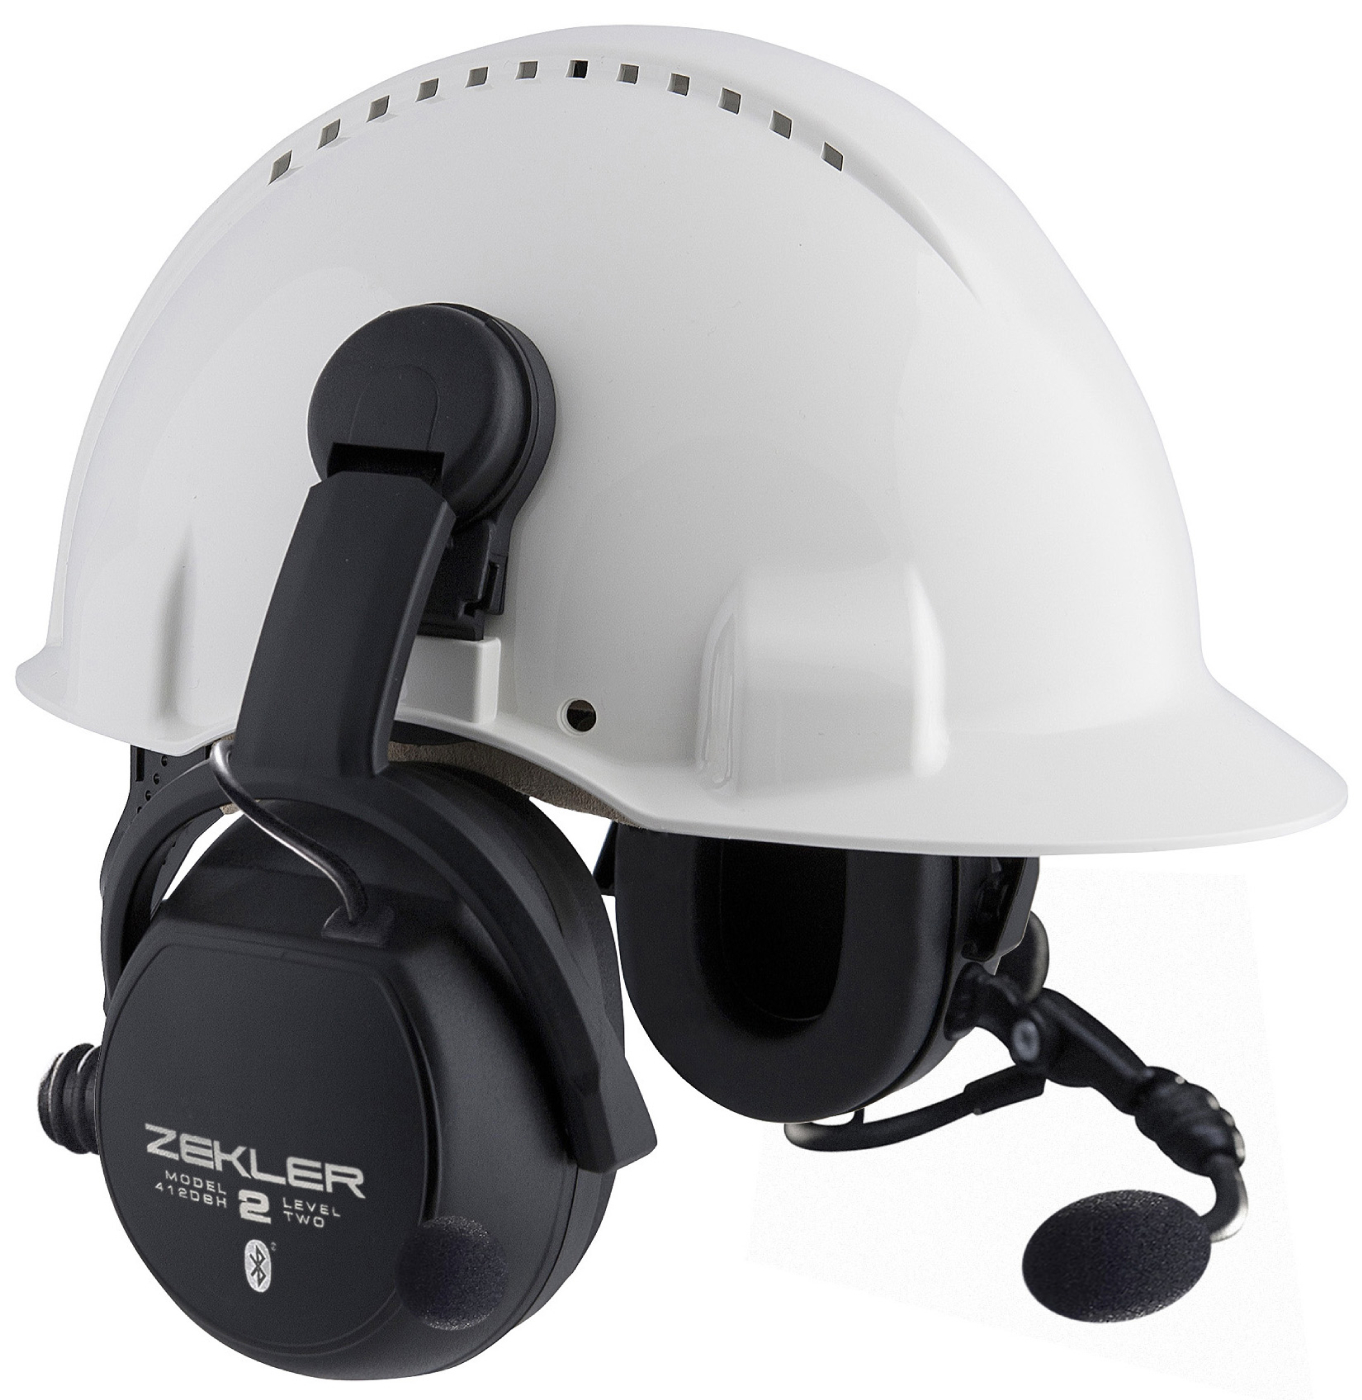 Hearing protection ZEKLER 412DBH